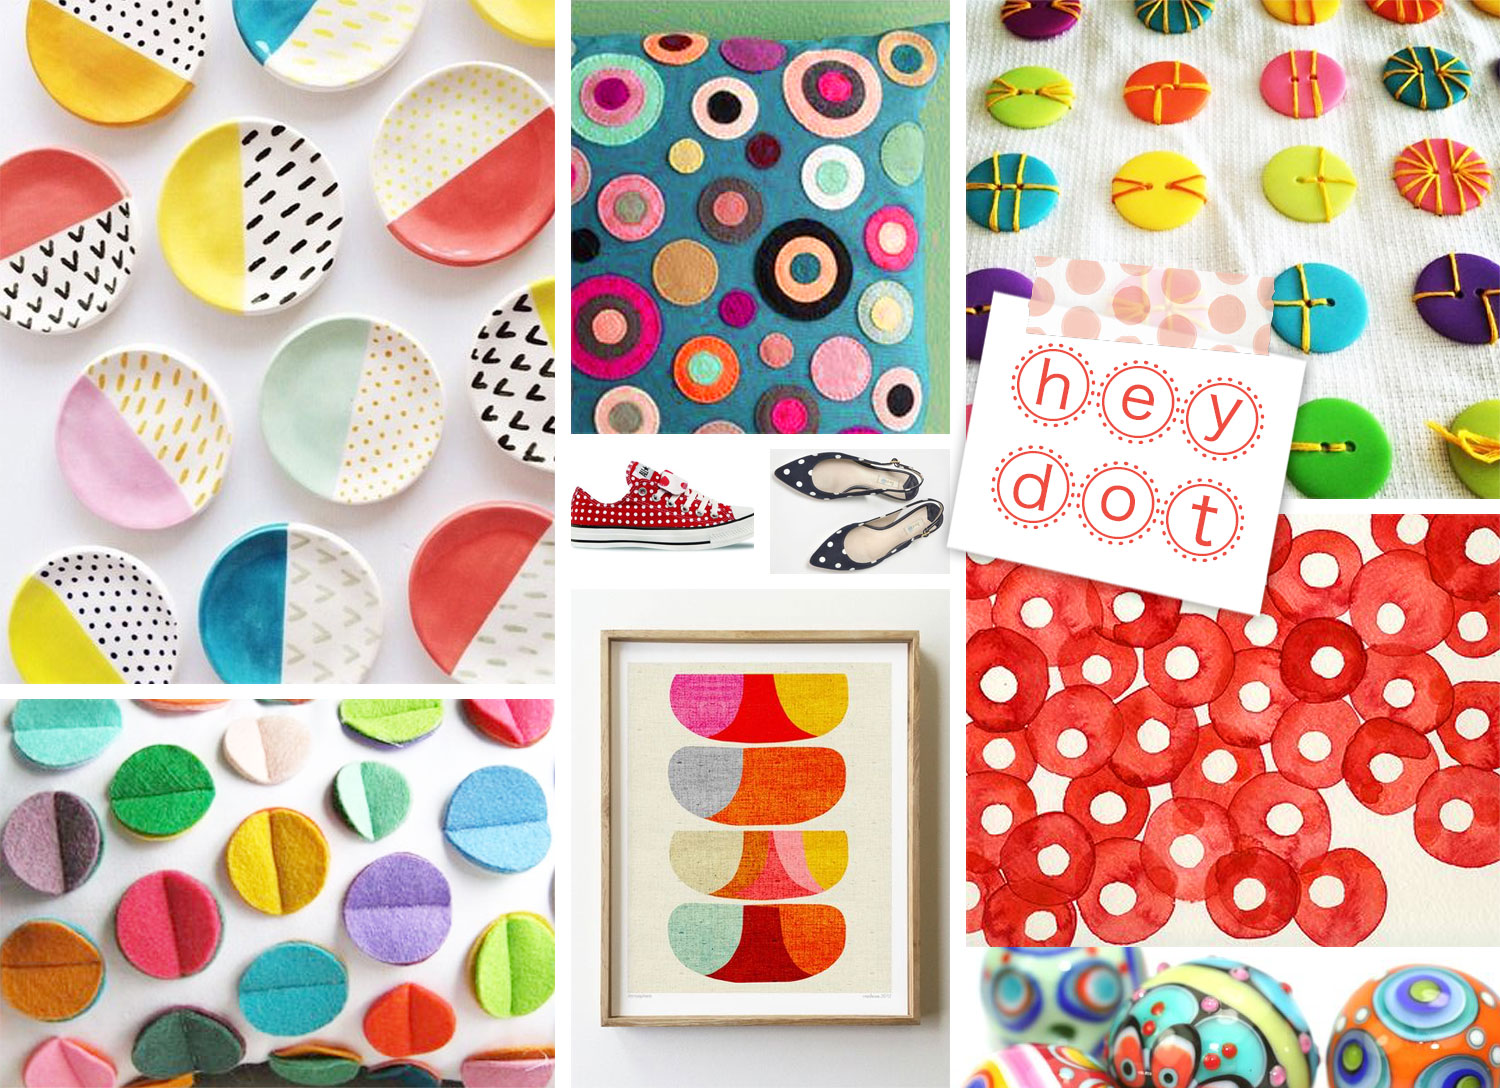 hey-dot-fabric-collection-by-zen-chic